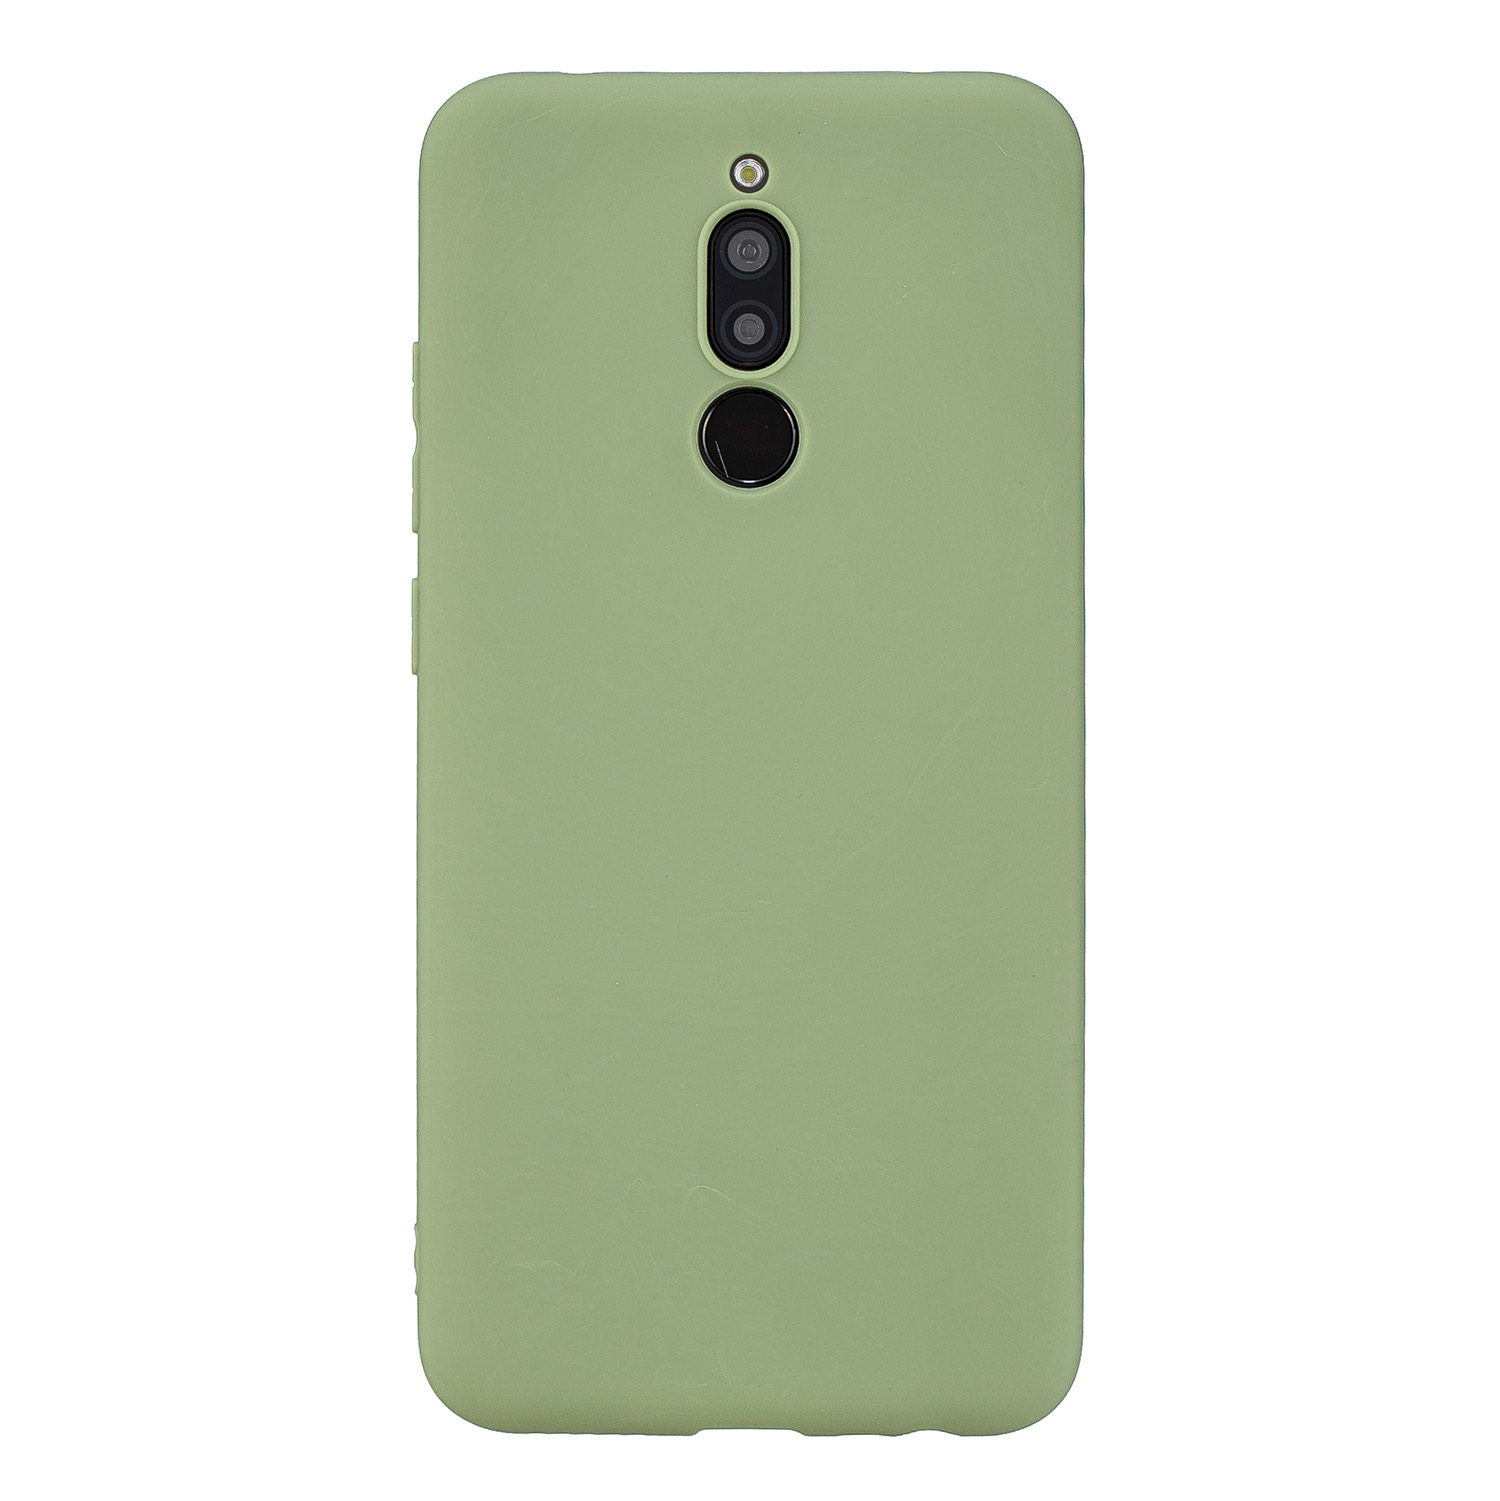 For Redmi 8 8A note 8T TPU Back Cover Soft Candy Color Frosted Surface Shockproof TPU Mobile Phone Protective Case 10